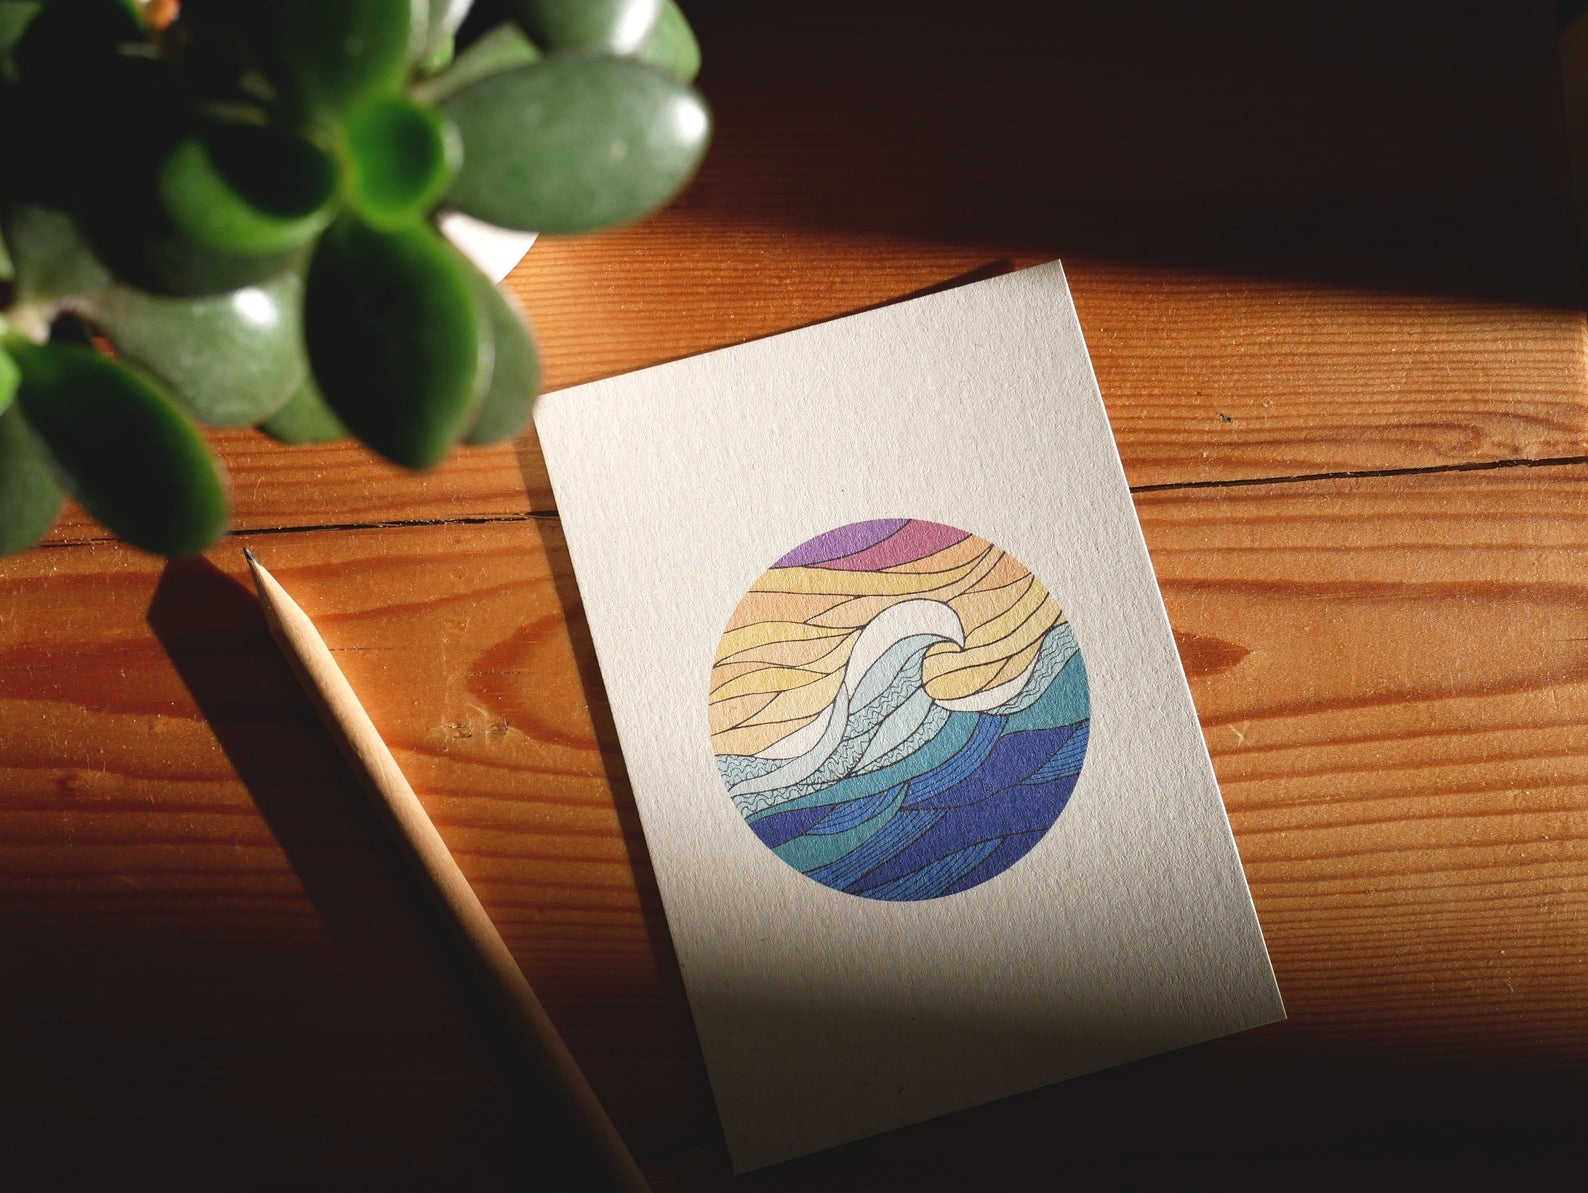 Colorful postcard on a wooden table near a pen and a plant